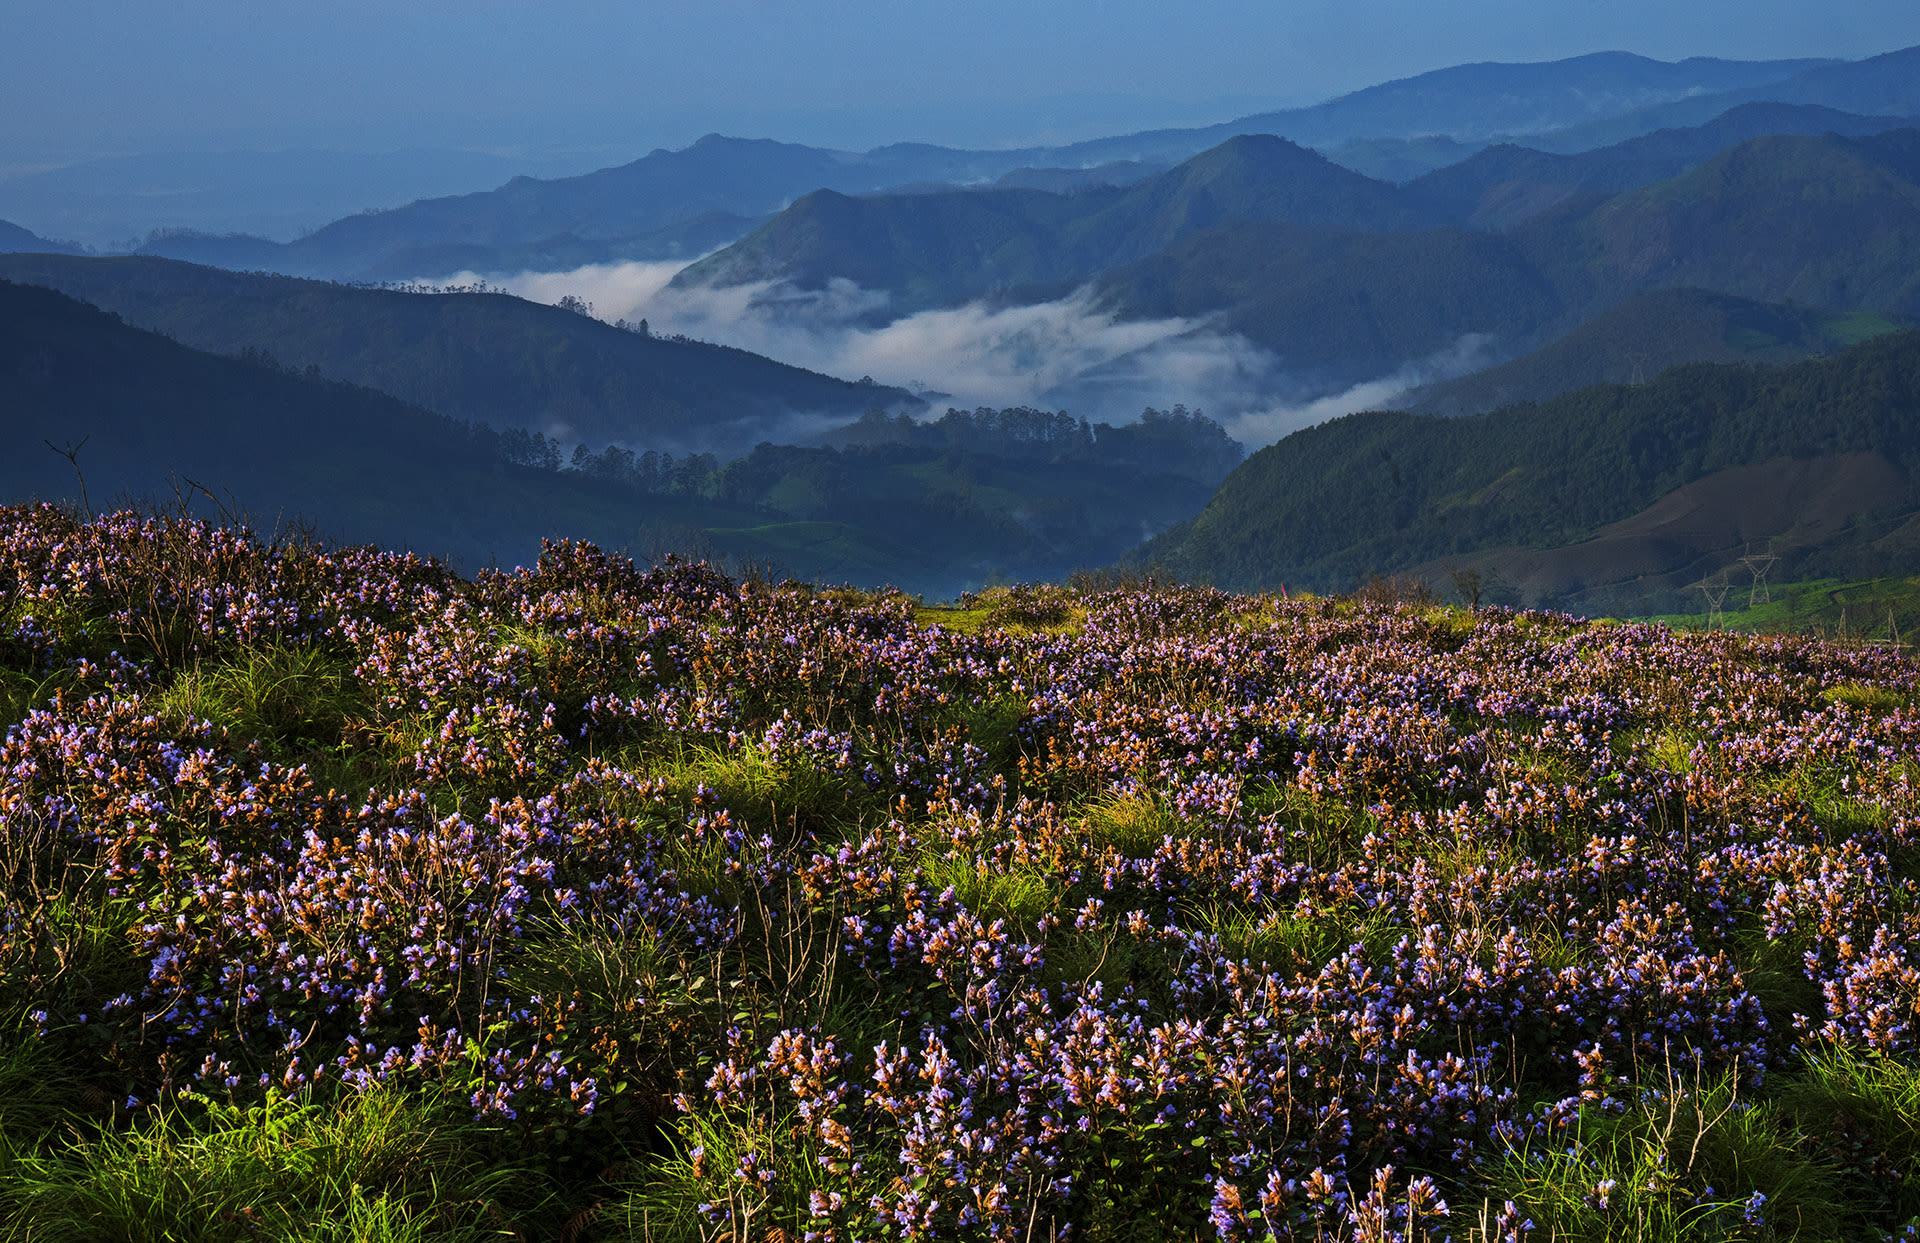 Shola grasslands are found in the higher reaches of the Nilgiris, the Anamalais, and other massifs in the southern Western Ghats. Kurinji flowers once in 12 years in these hills, turning the hillsides violet/blue. Photo: Dhritiman Mukherjee  Cover:  The blue-eyed bush frog (Raorchestes luteolus) is endemic to the Western Ghats and is found in Coorg and its neighbouring regions.  Cover photo: Sebinster Francis